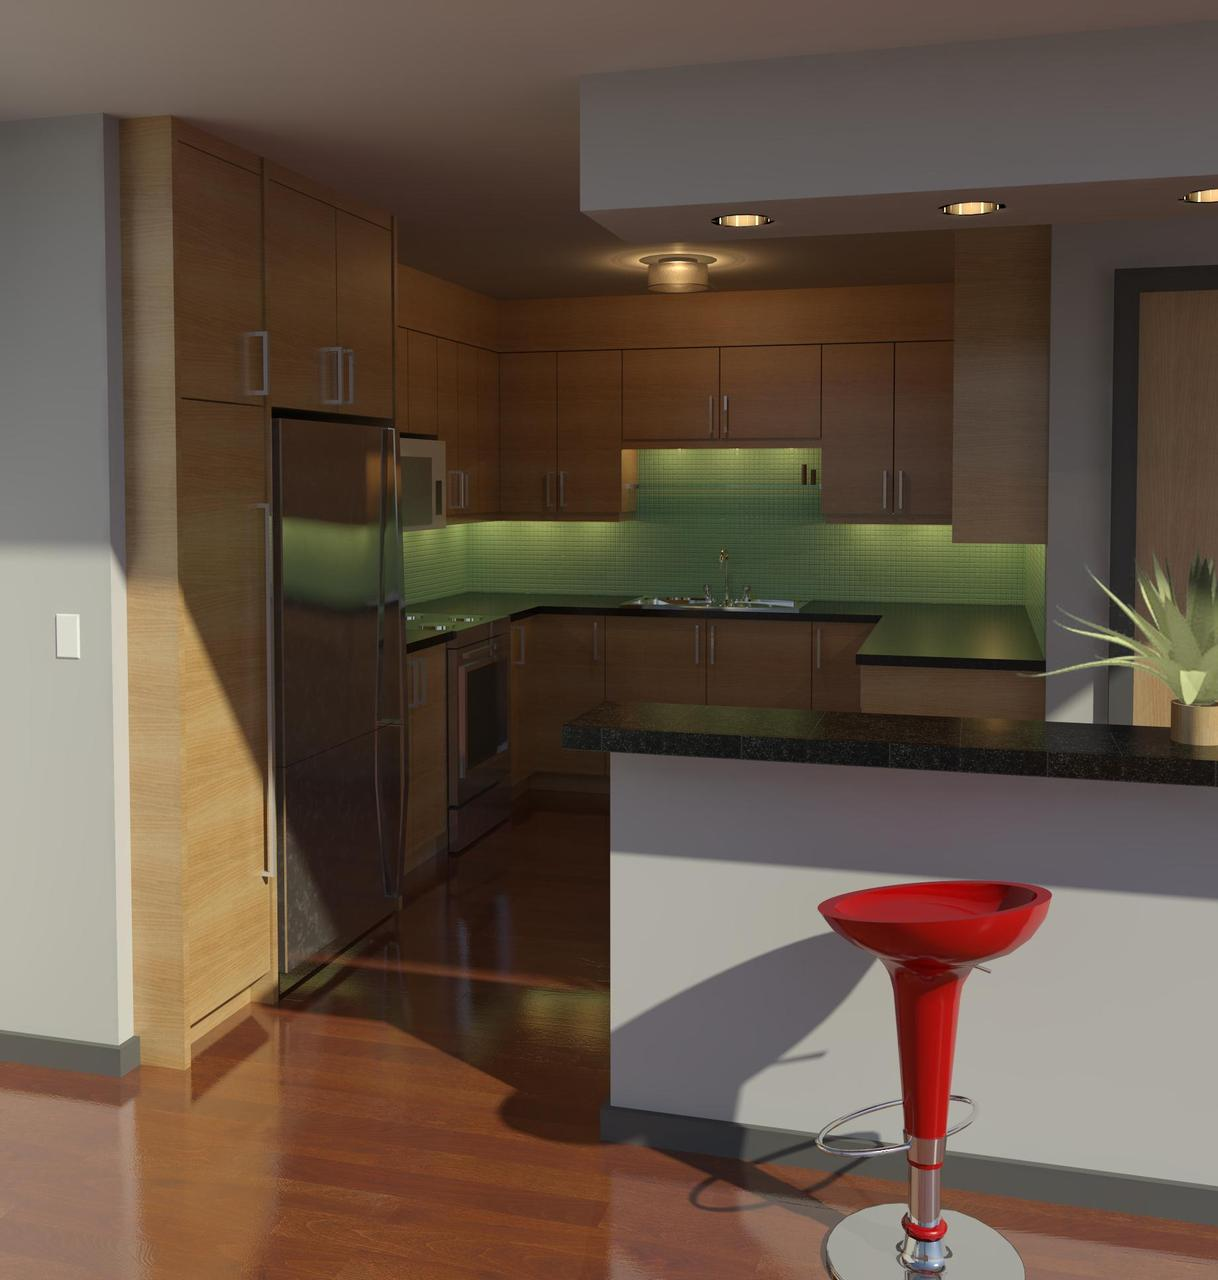 Inertia's first interior rendering, showing a proposed kitchen renovation. The actual kitchen is now substantially done and looks to match this image quite closely…